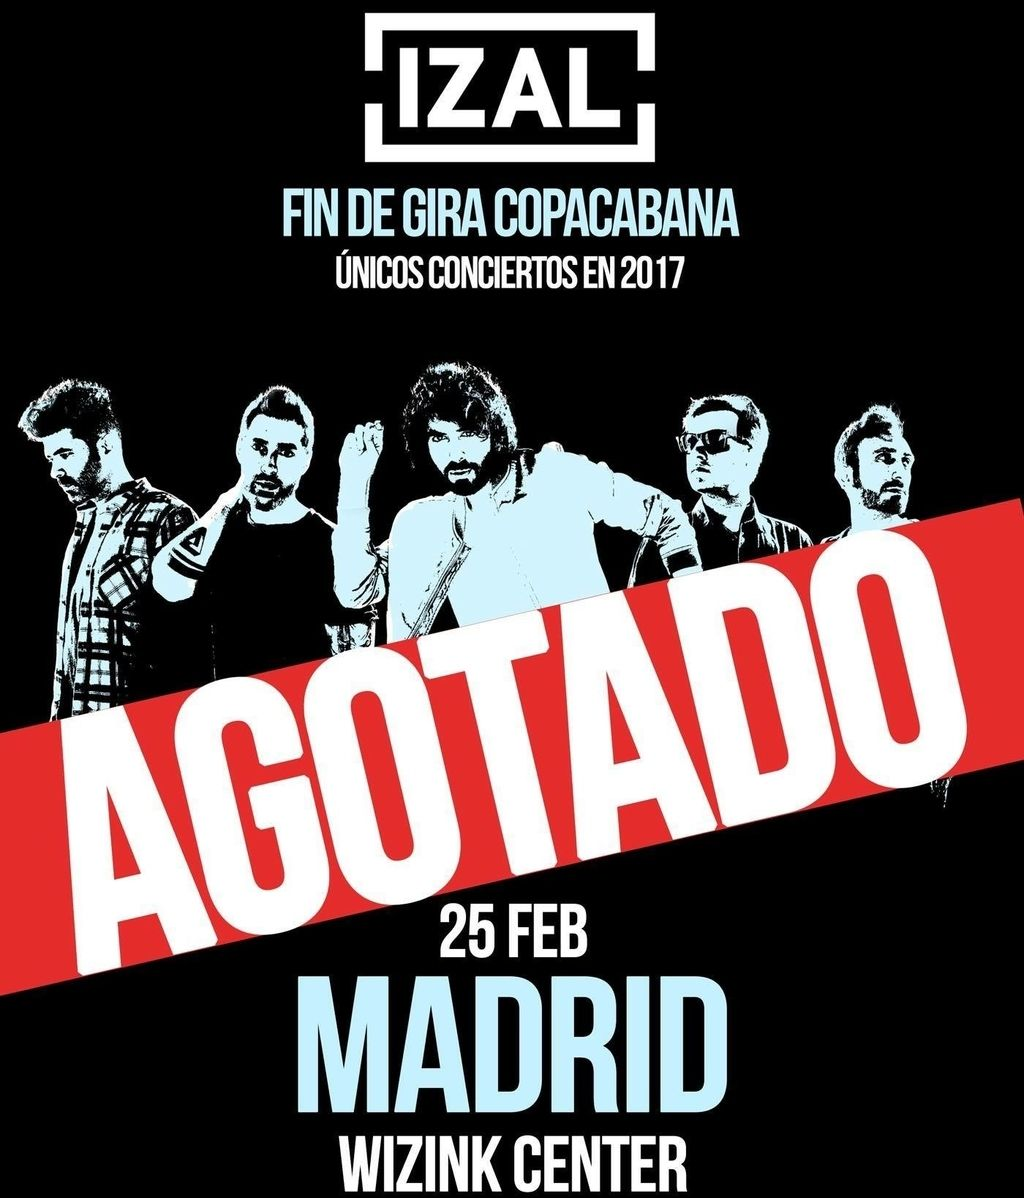 Cartel IZAL SOLD OUT Madrid